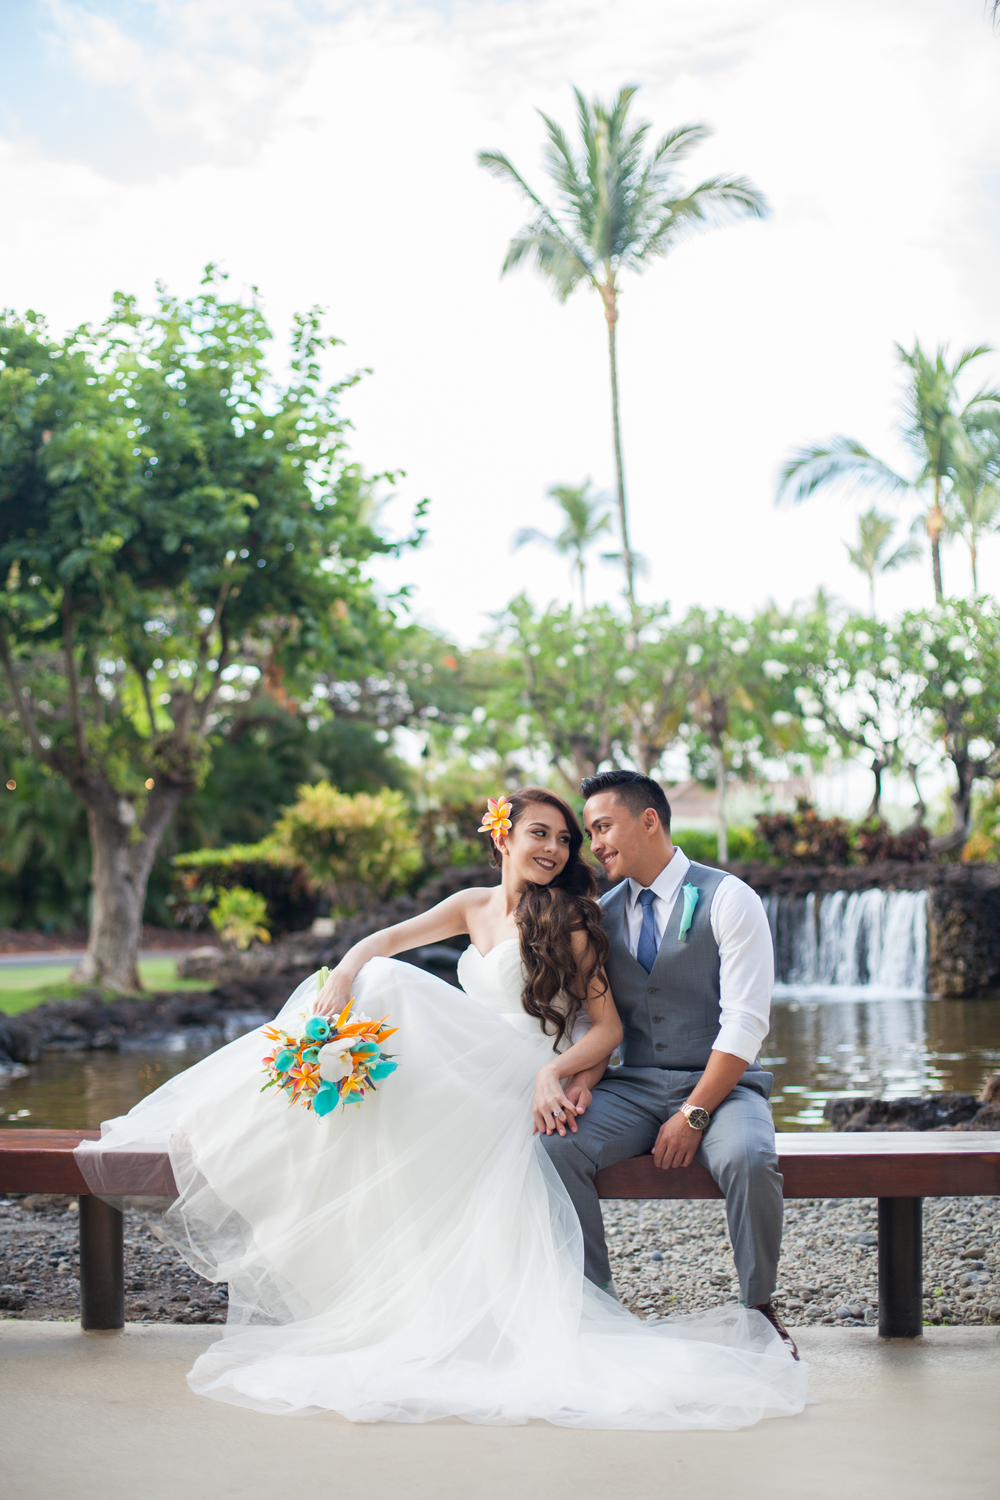 big island hawaii mauna lani resort wedding © kelilina photography 20160523180107-1.jpg